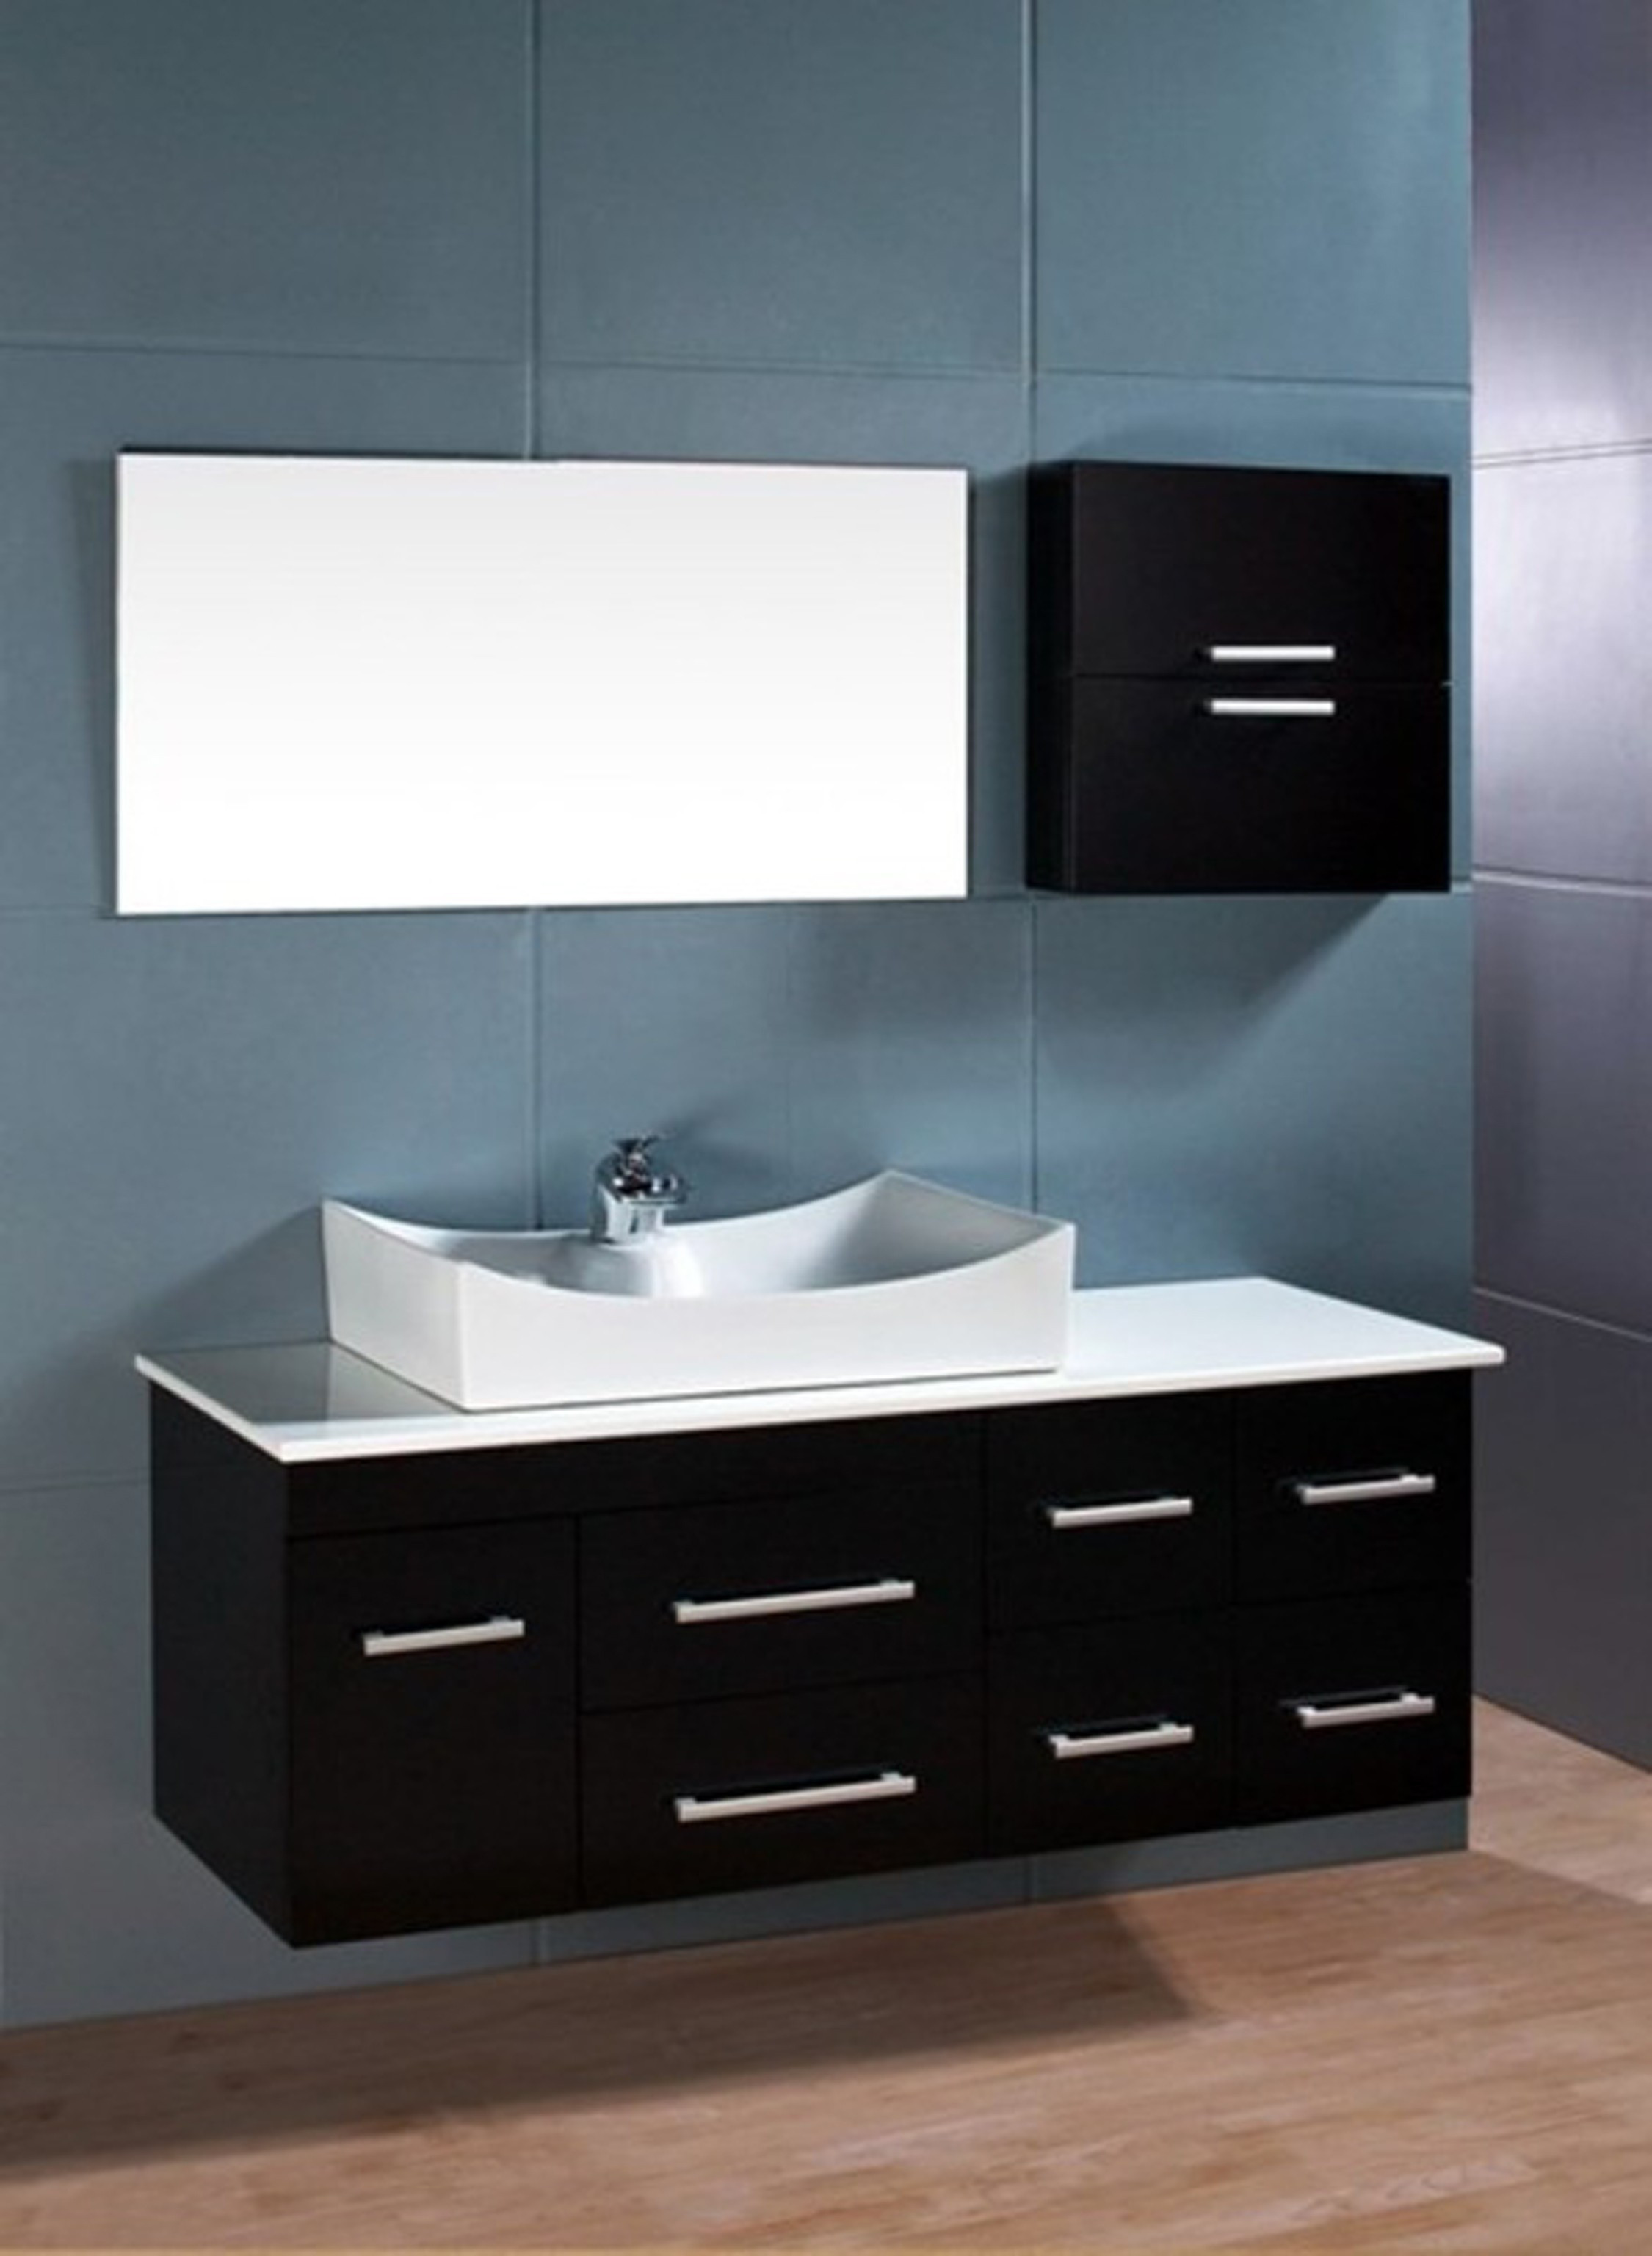 Best ideas about Home Depot Bathroom Sink . Save or Pin Bathroom Gorgeous Vessel Sinks Home Depot For Modern Now.